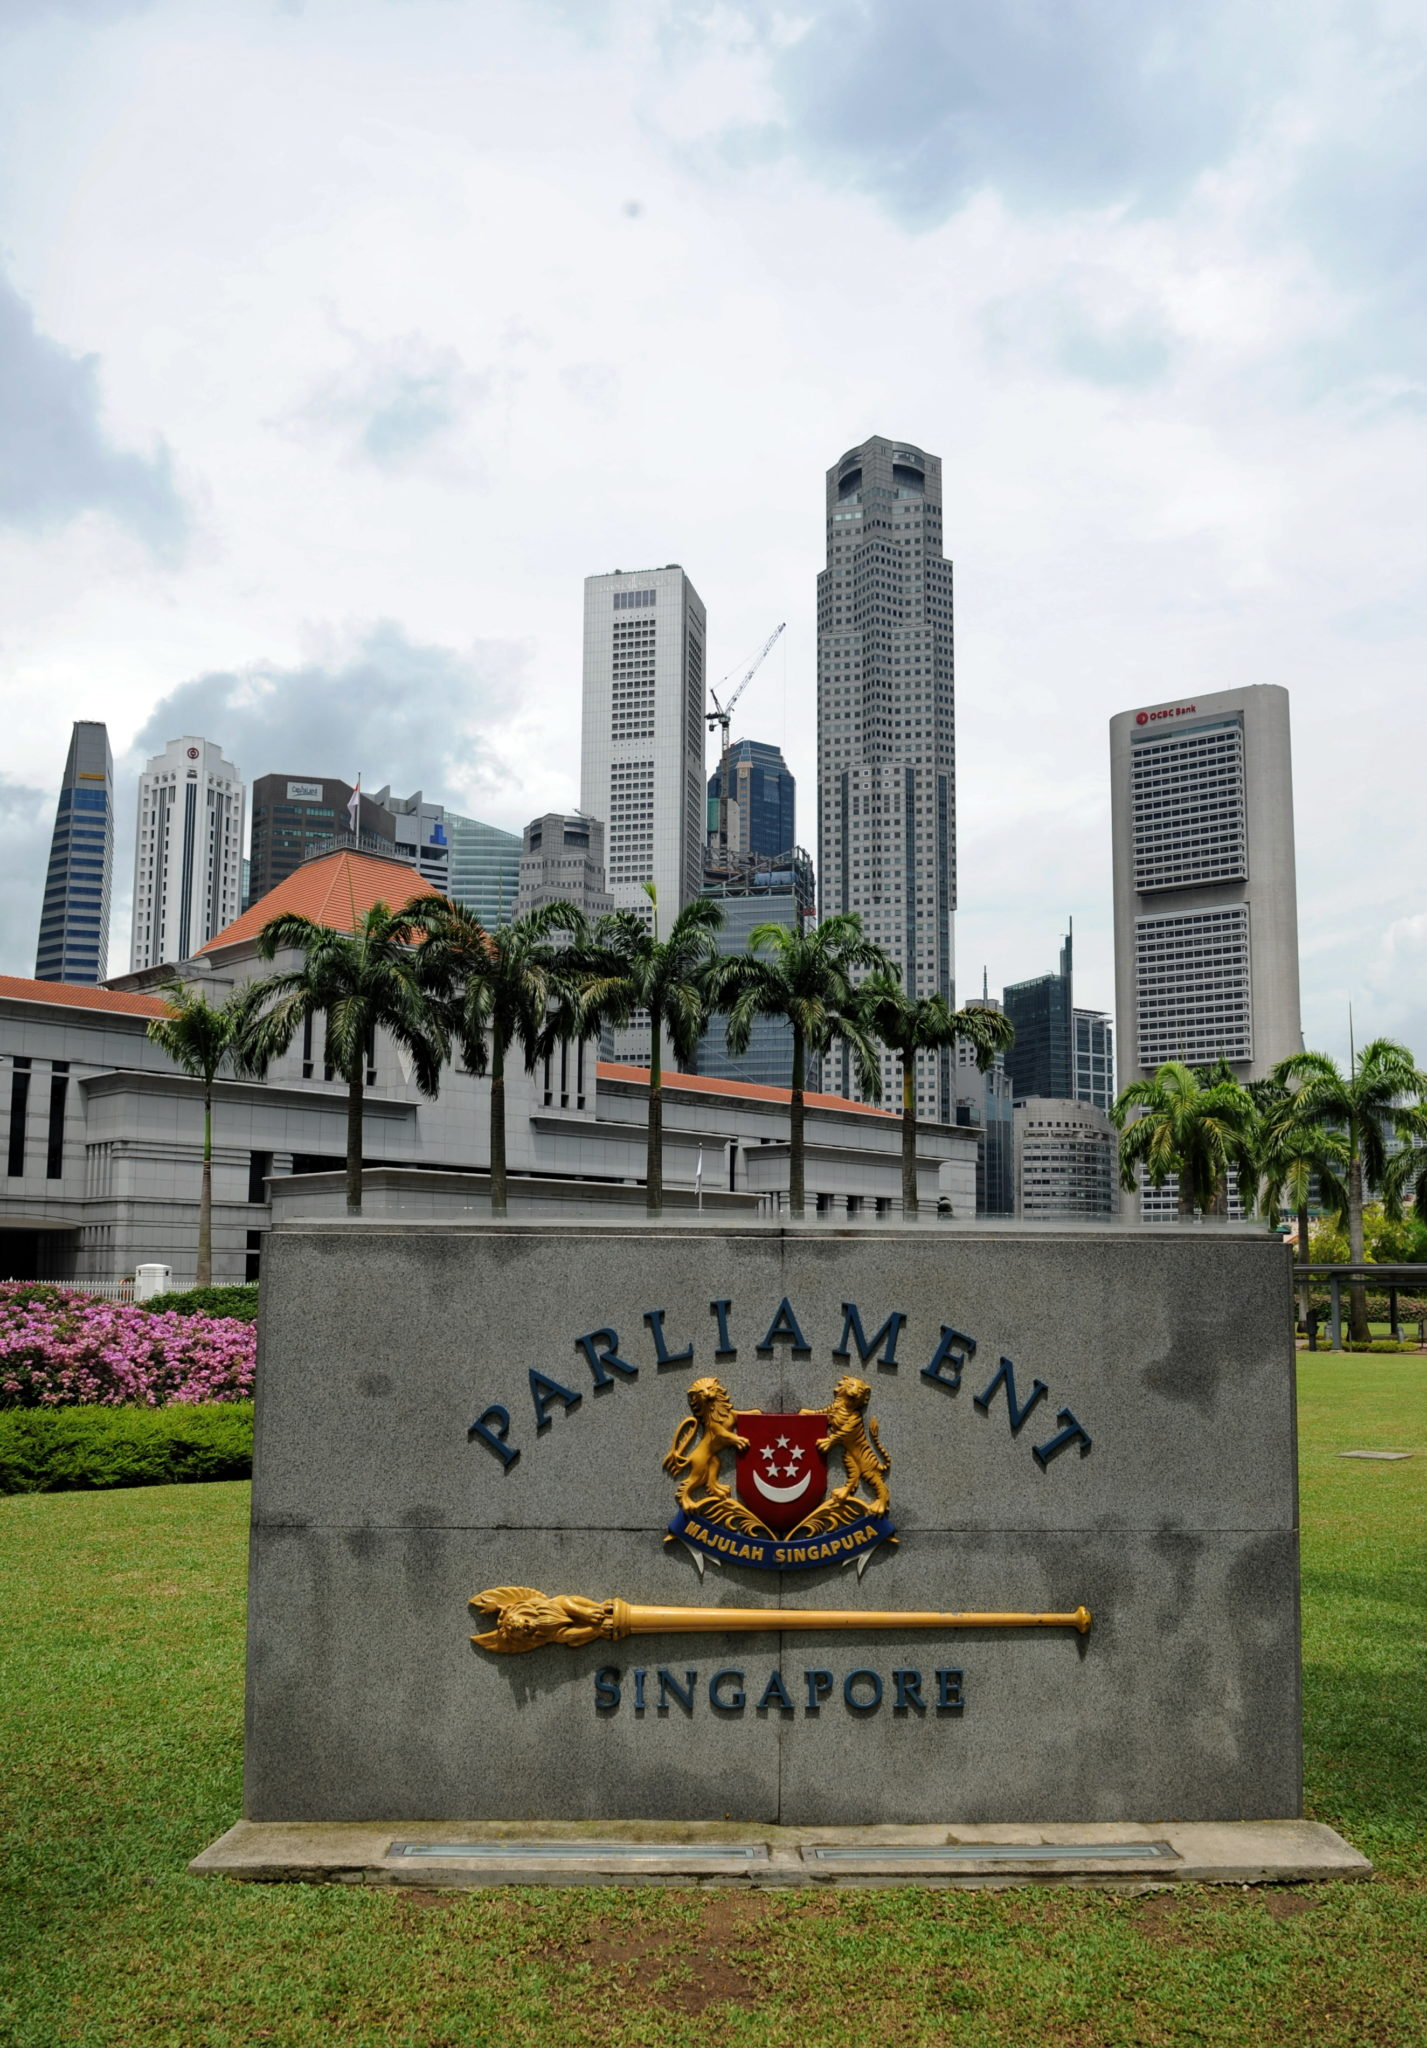 Singapore: Cooperate or Die